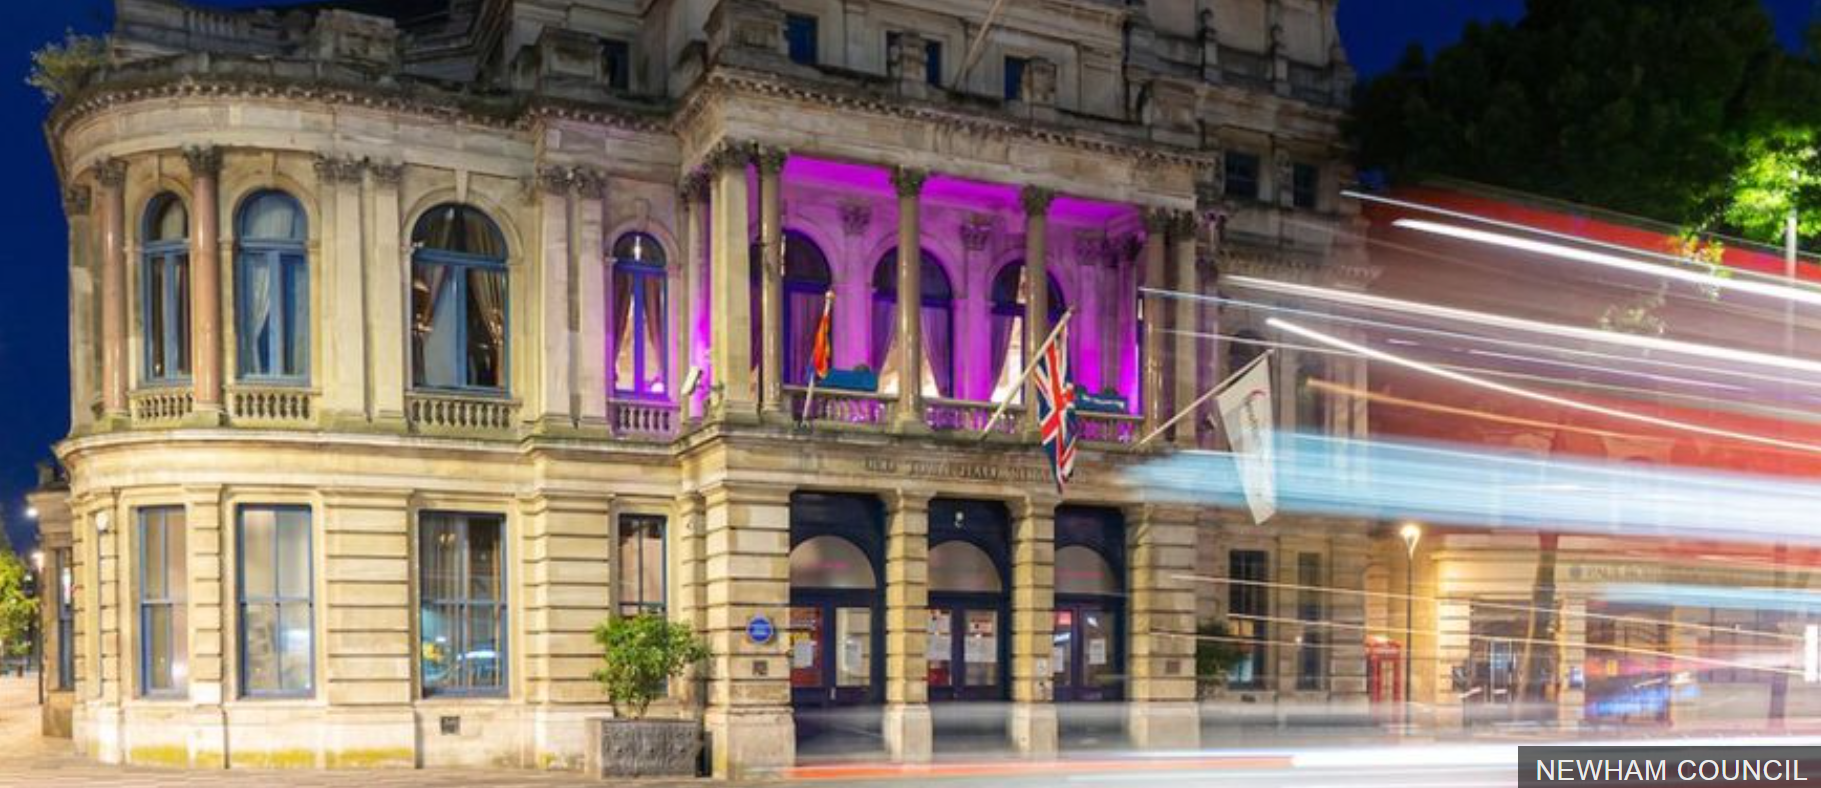 Newham Town Hall buildings and offices were turned purple to remember George Floyd.